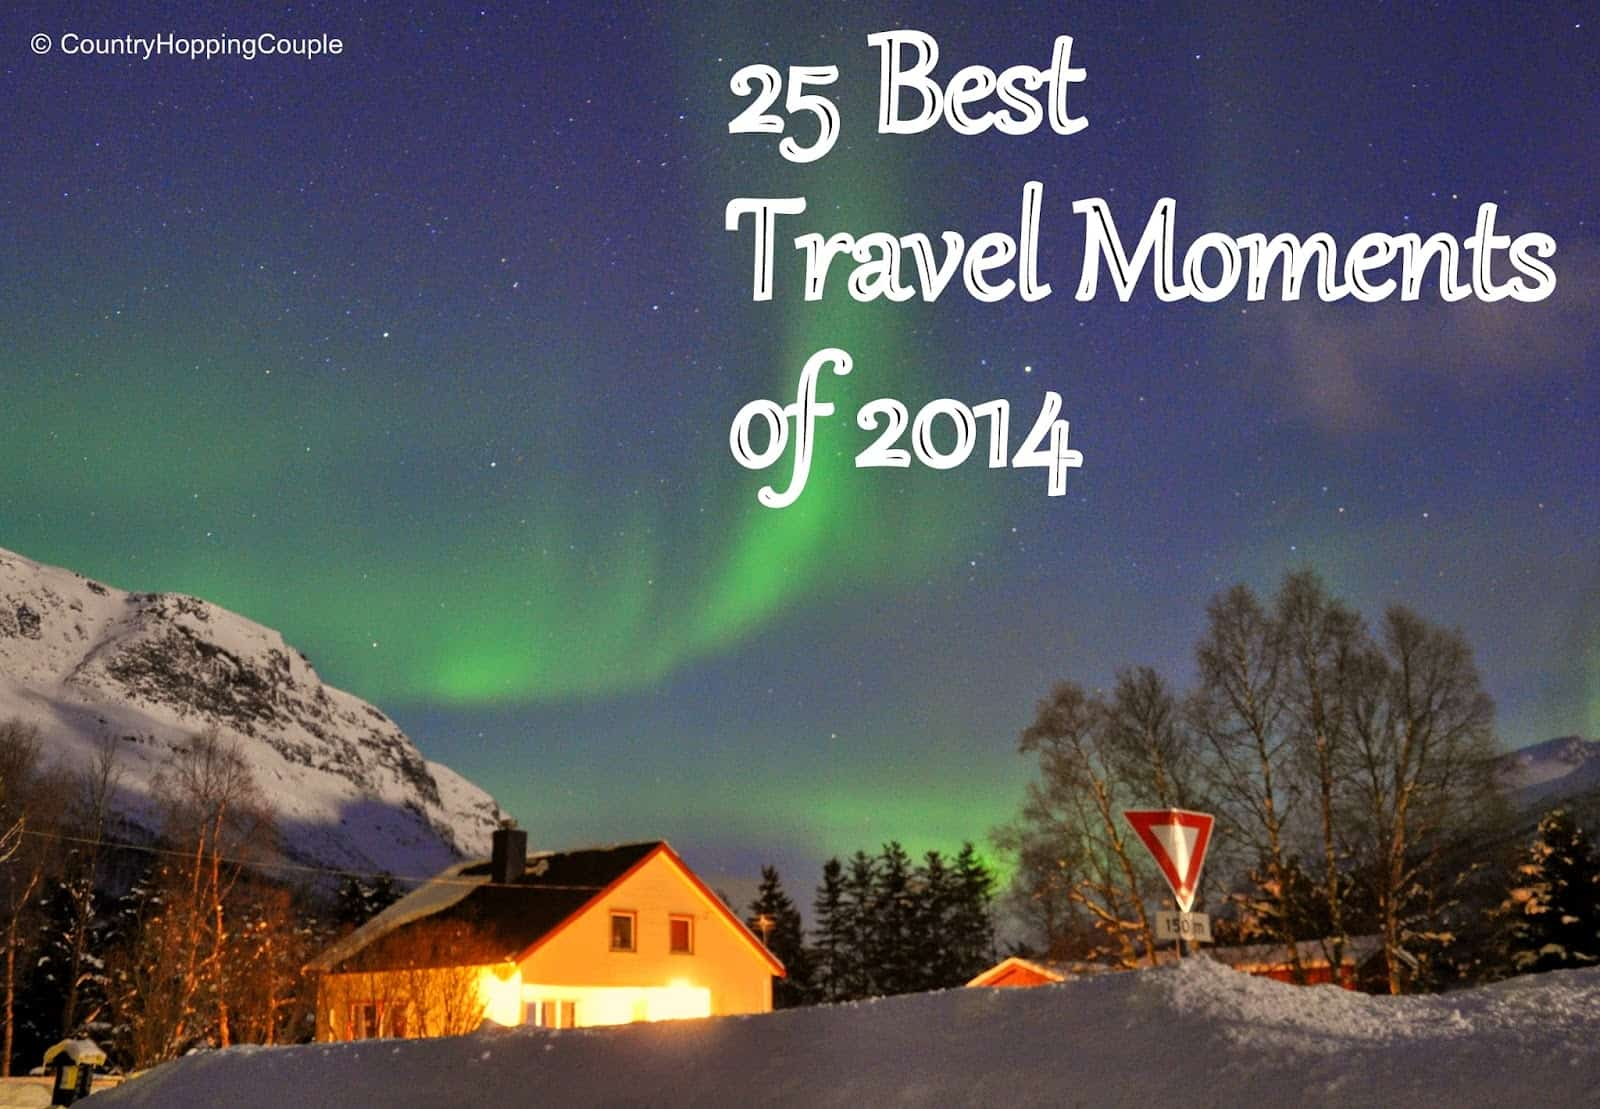 25 Best Travel Moments & Photographs of 2014